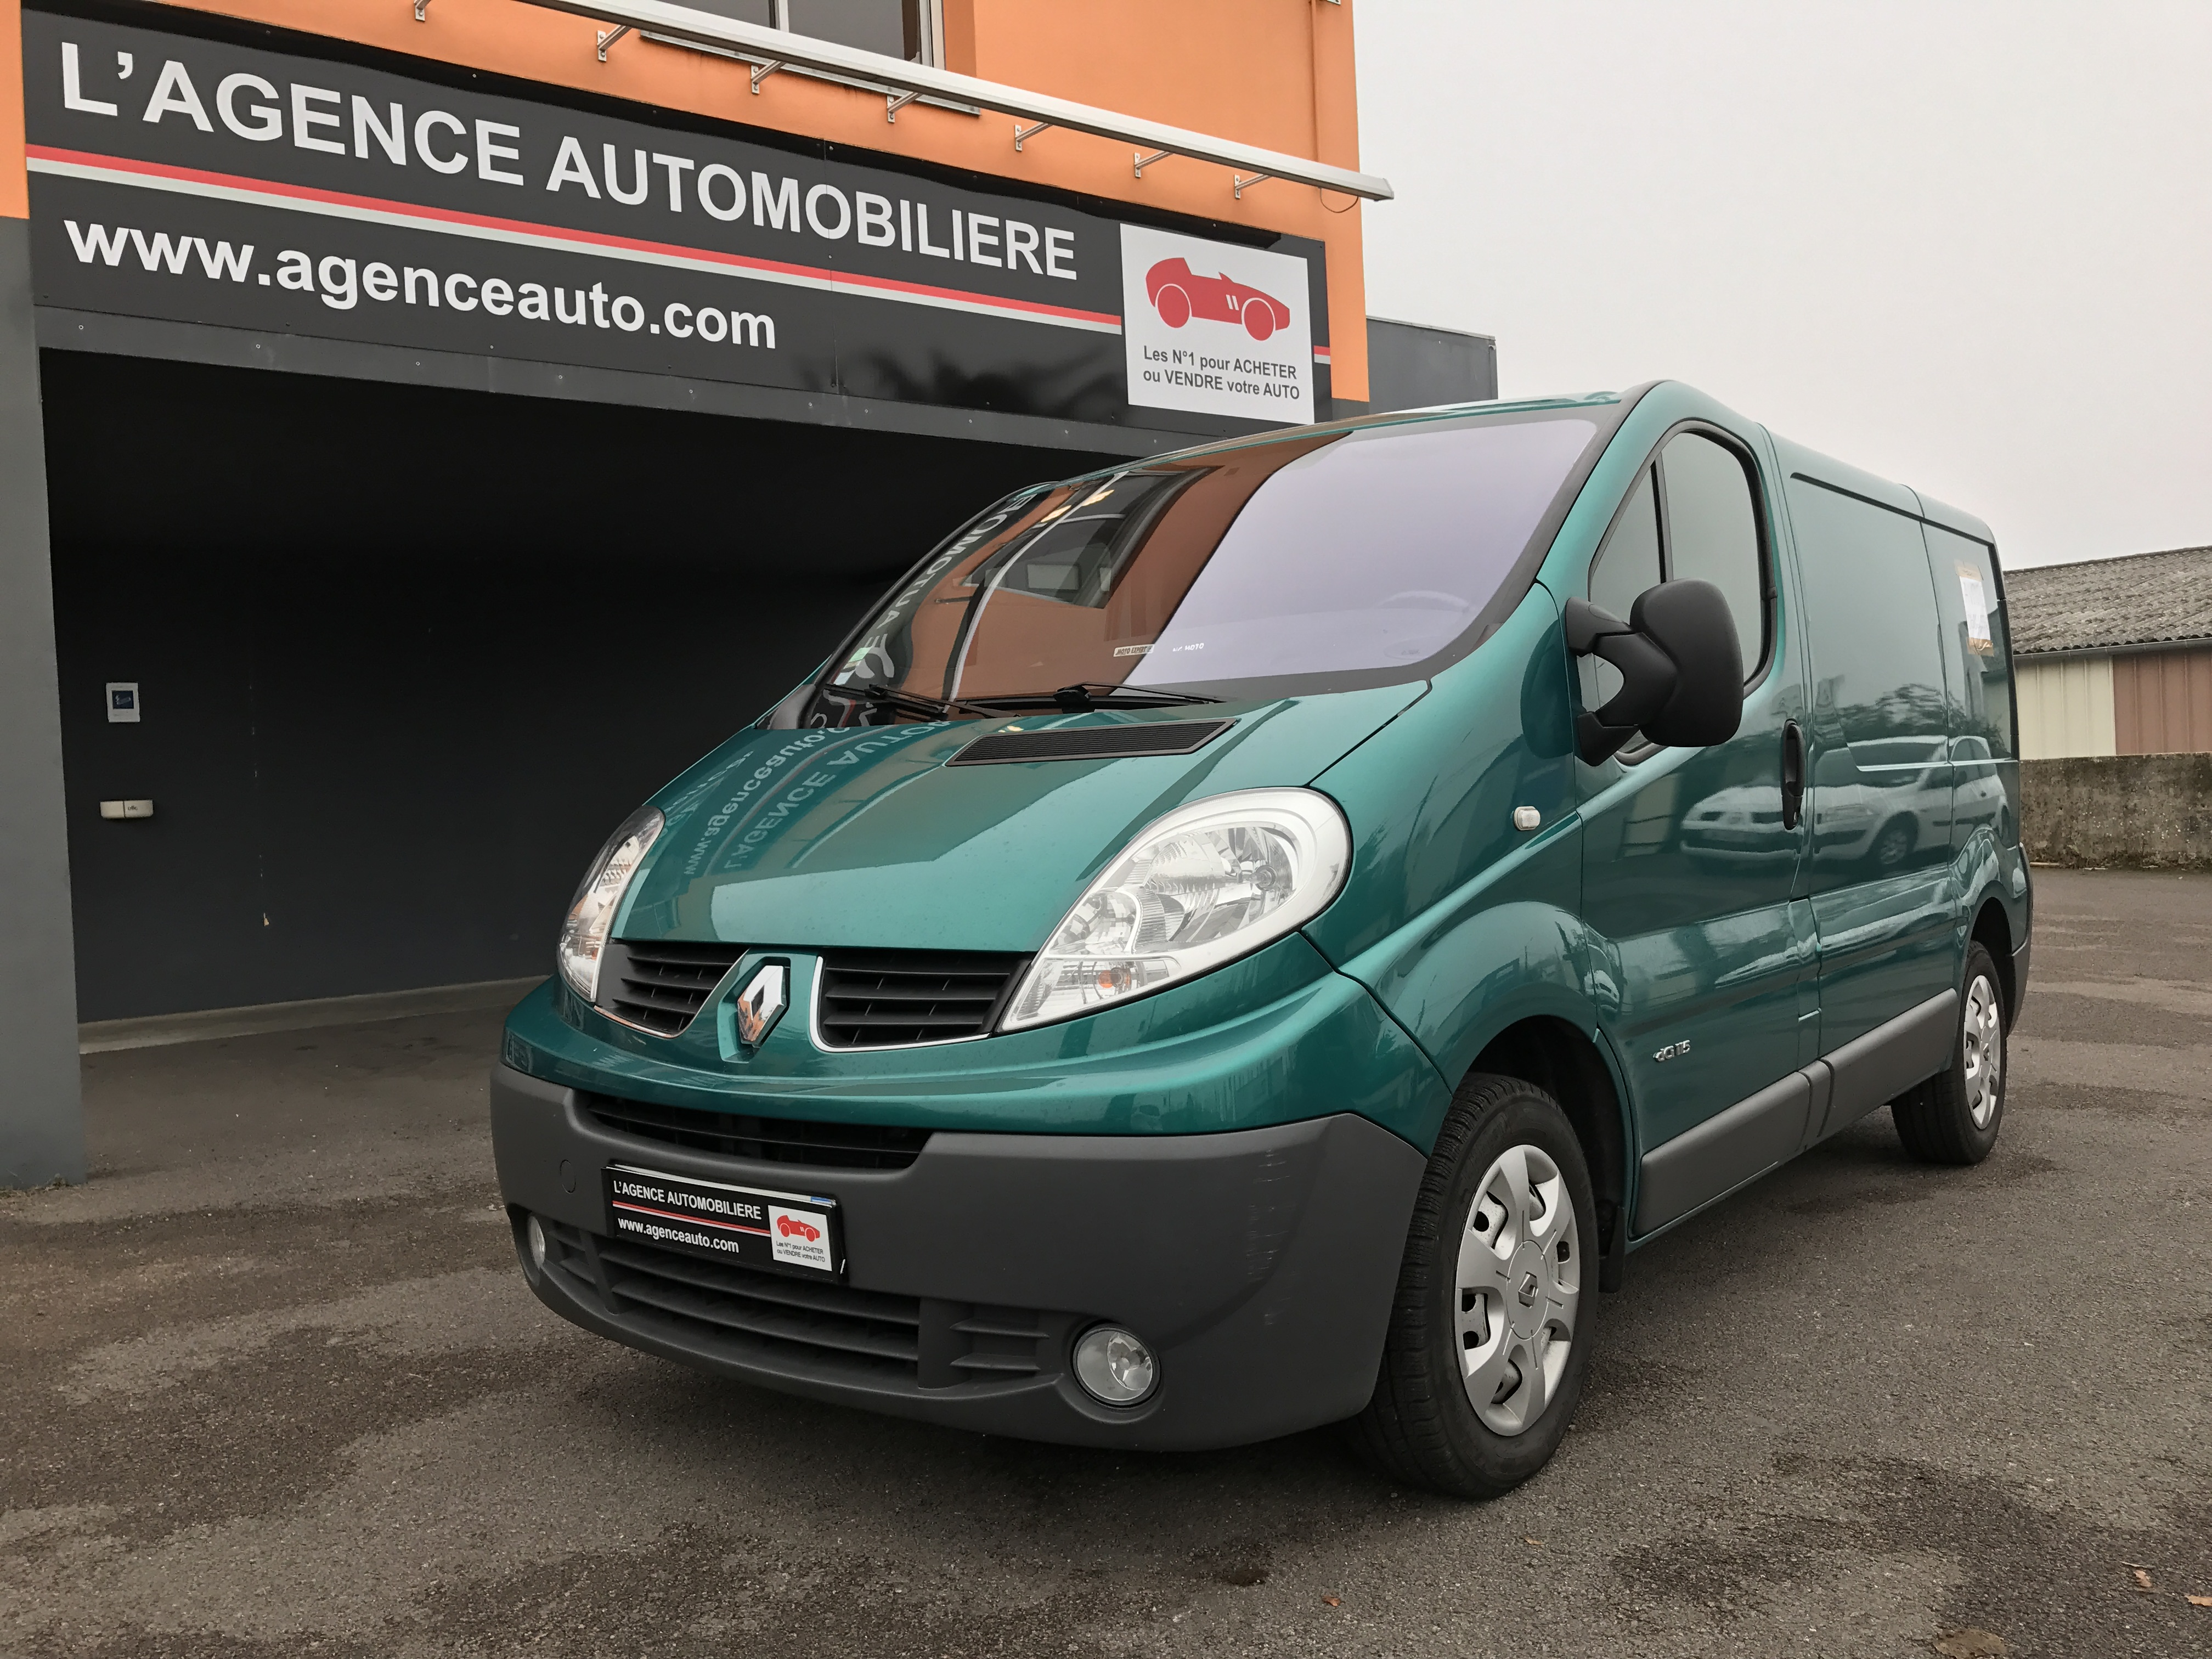 renault trafic grand confort 2 l dci 115 cv occasion dijon pas cher voiture occasion c te d 39 or. Black Bedroom Furniture Sets. Home Design Ideas